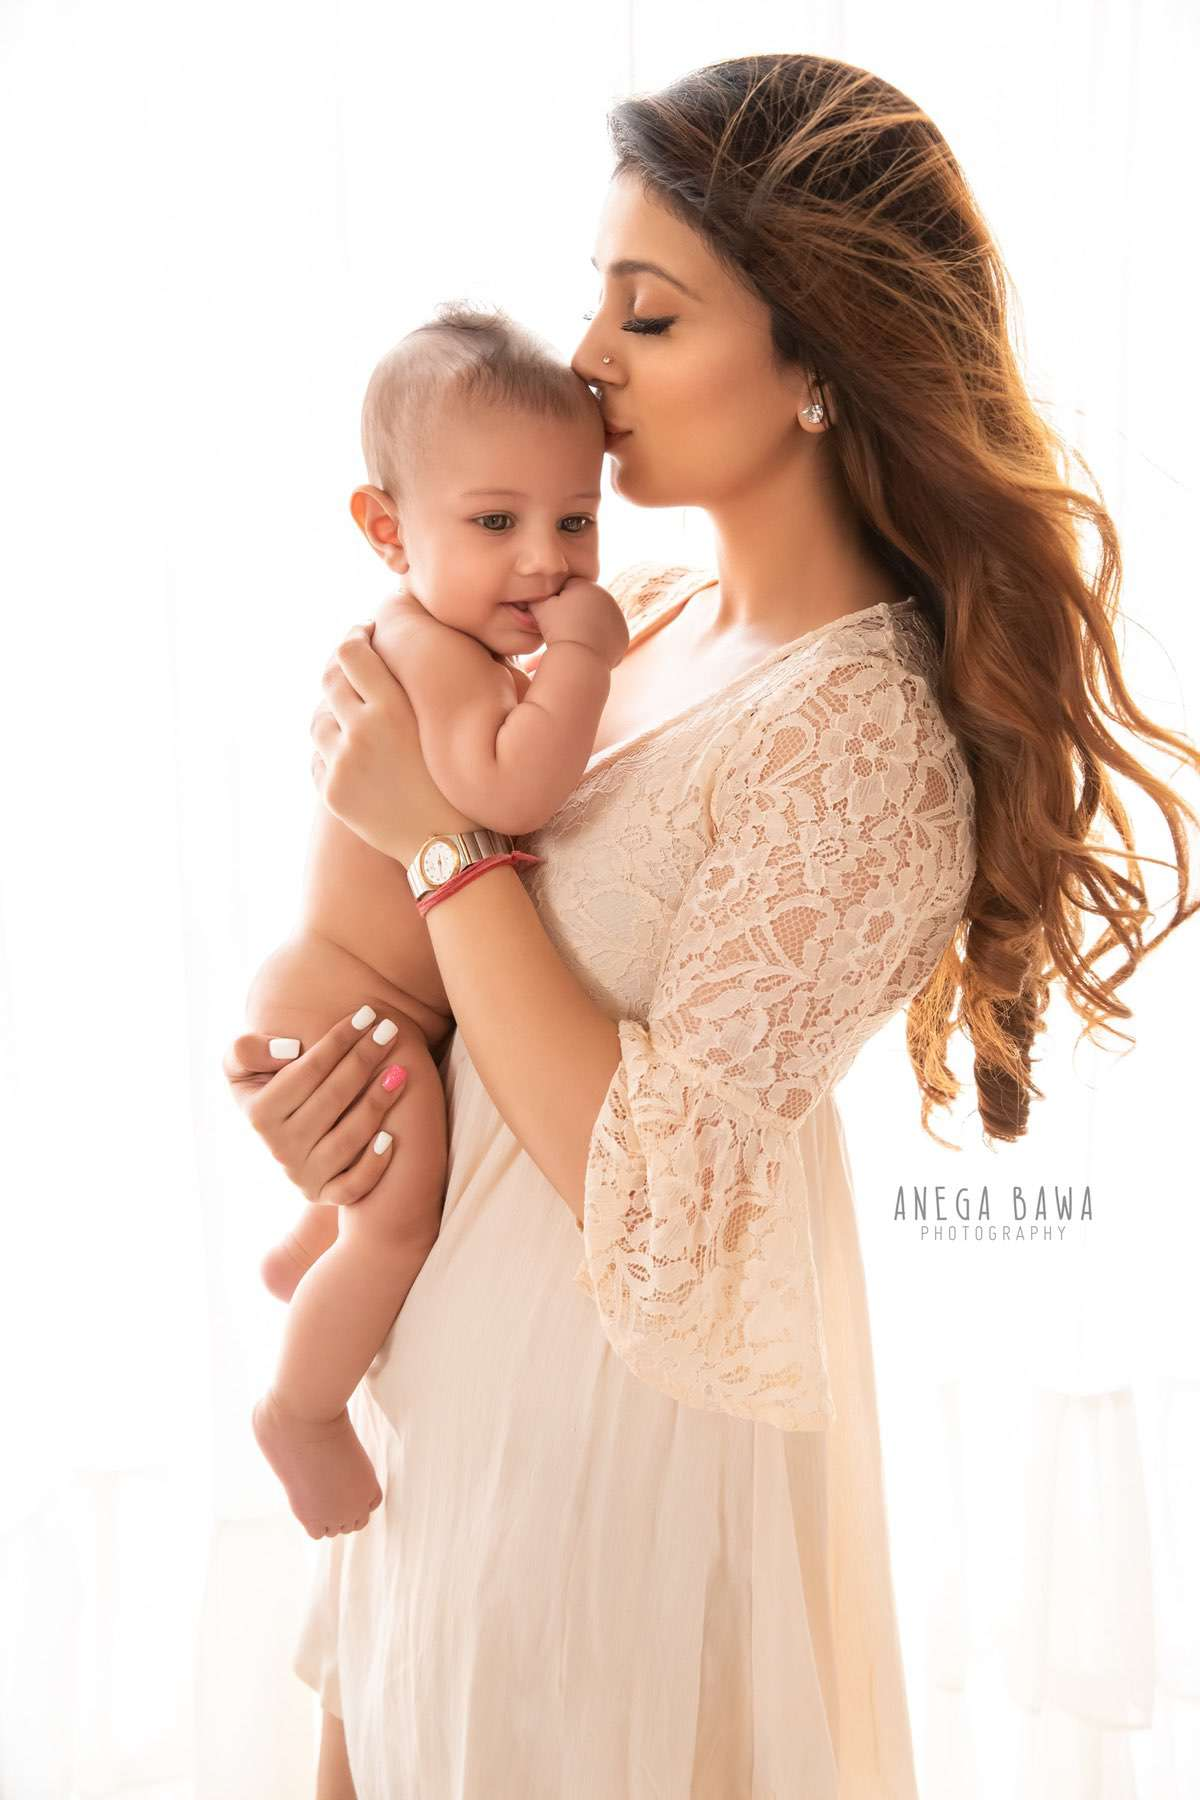 245606-white-background-mother-and-baby-photography-delhi-4-5-6-7-months-baby-photoshoot-gurgaon-anega-bawa